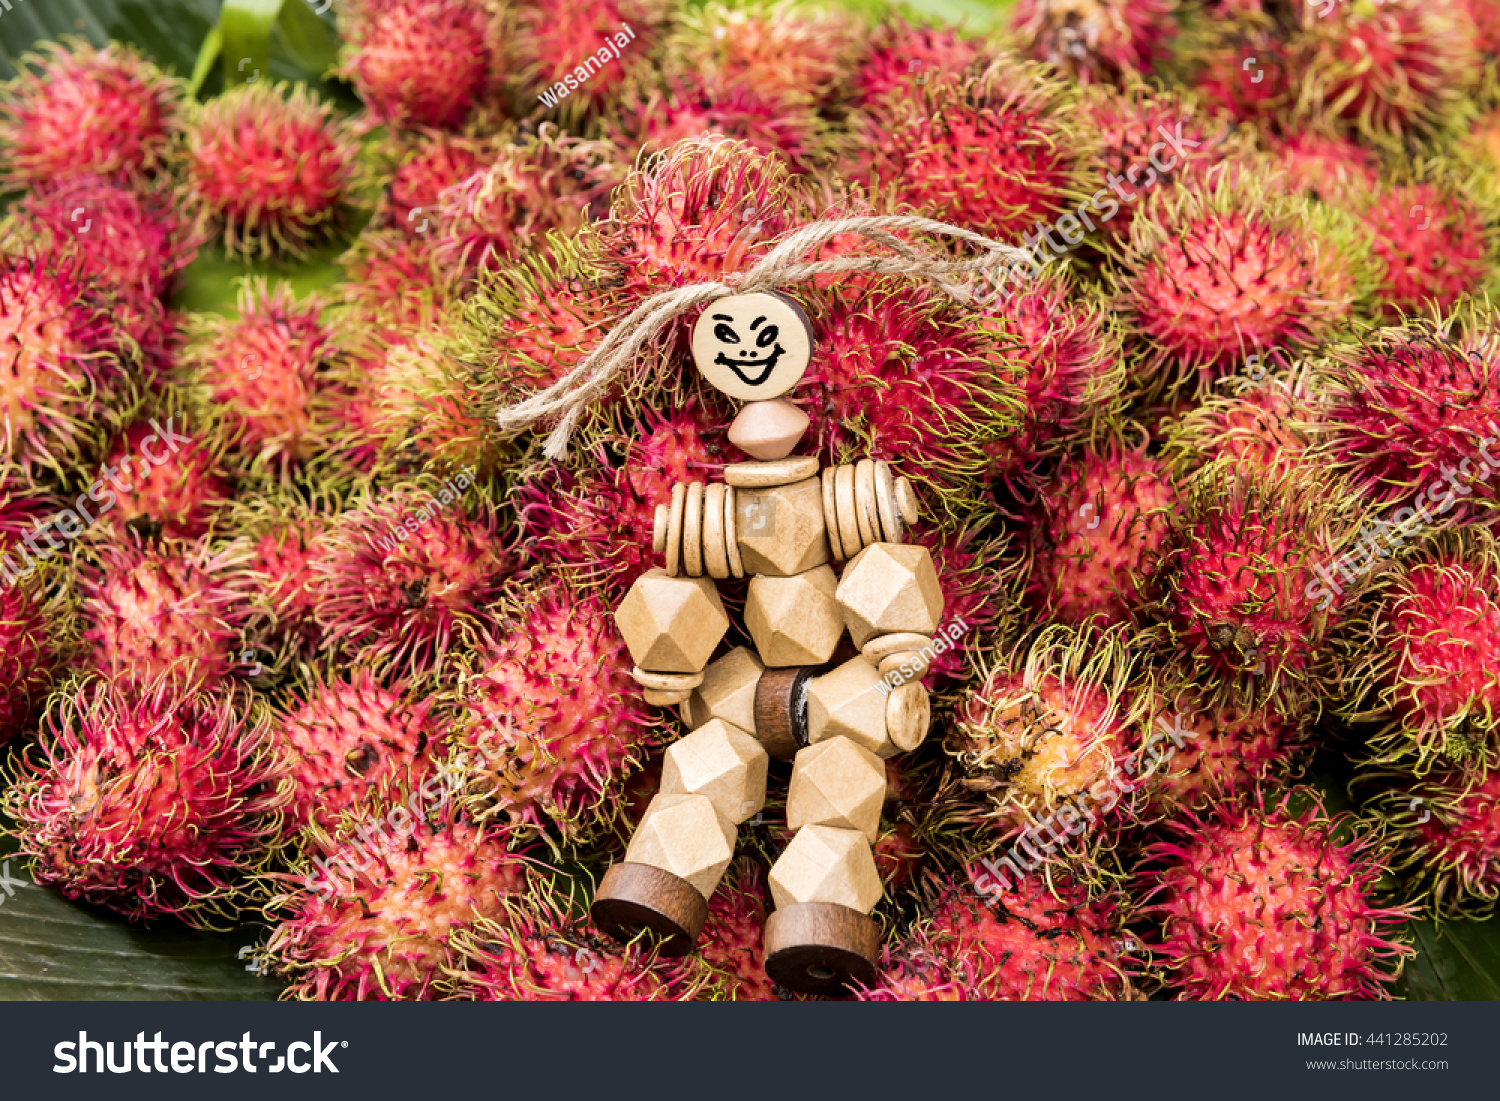 Save fruit doll - Save To A Lightbox